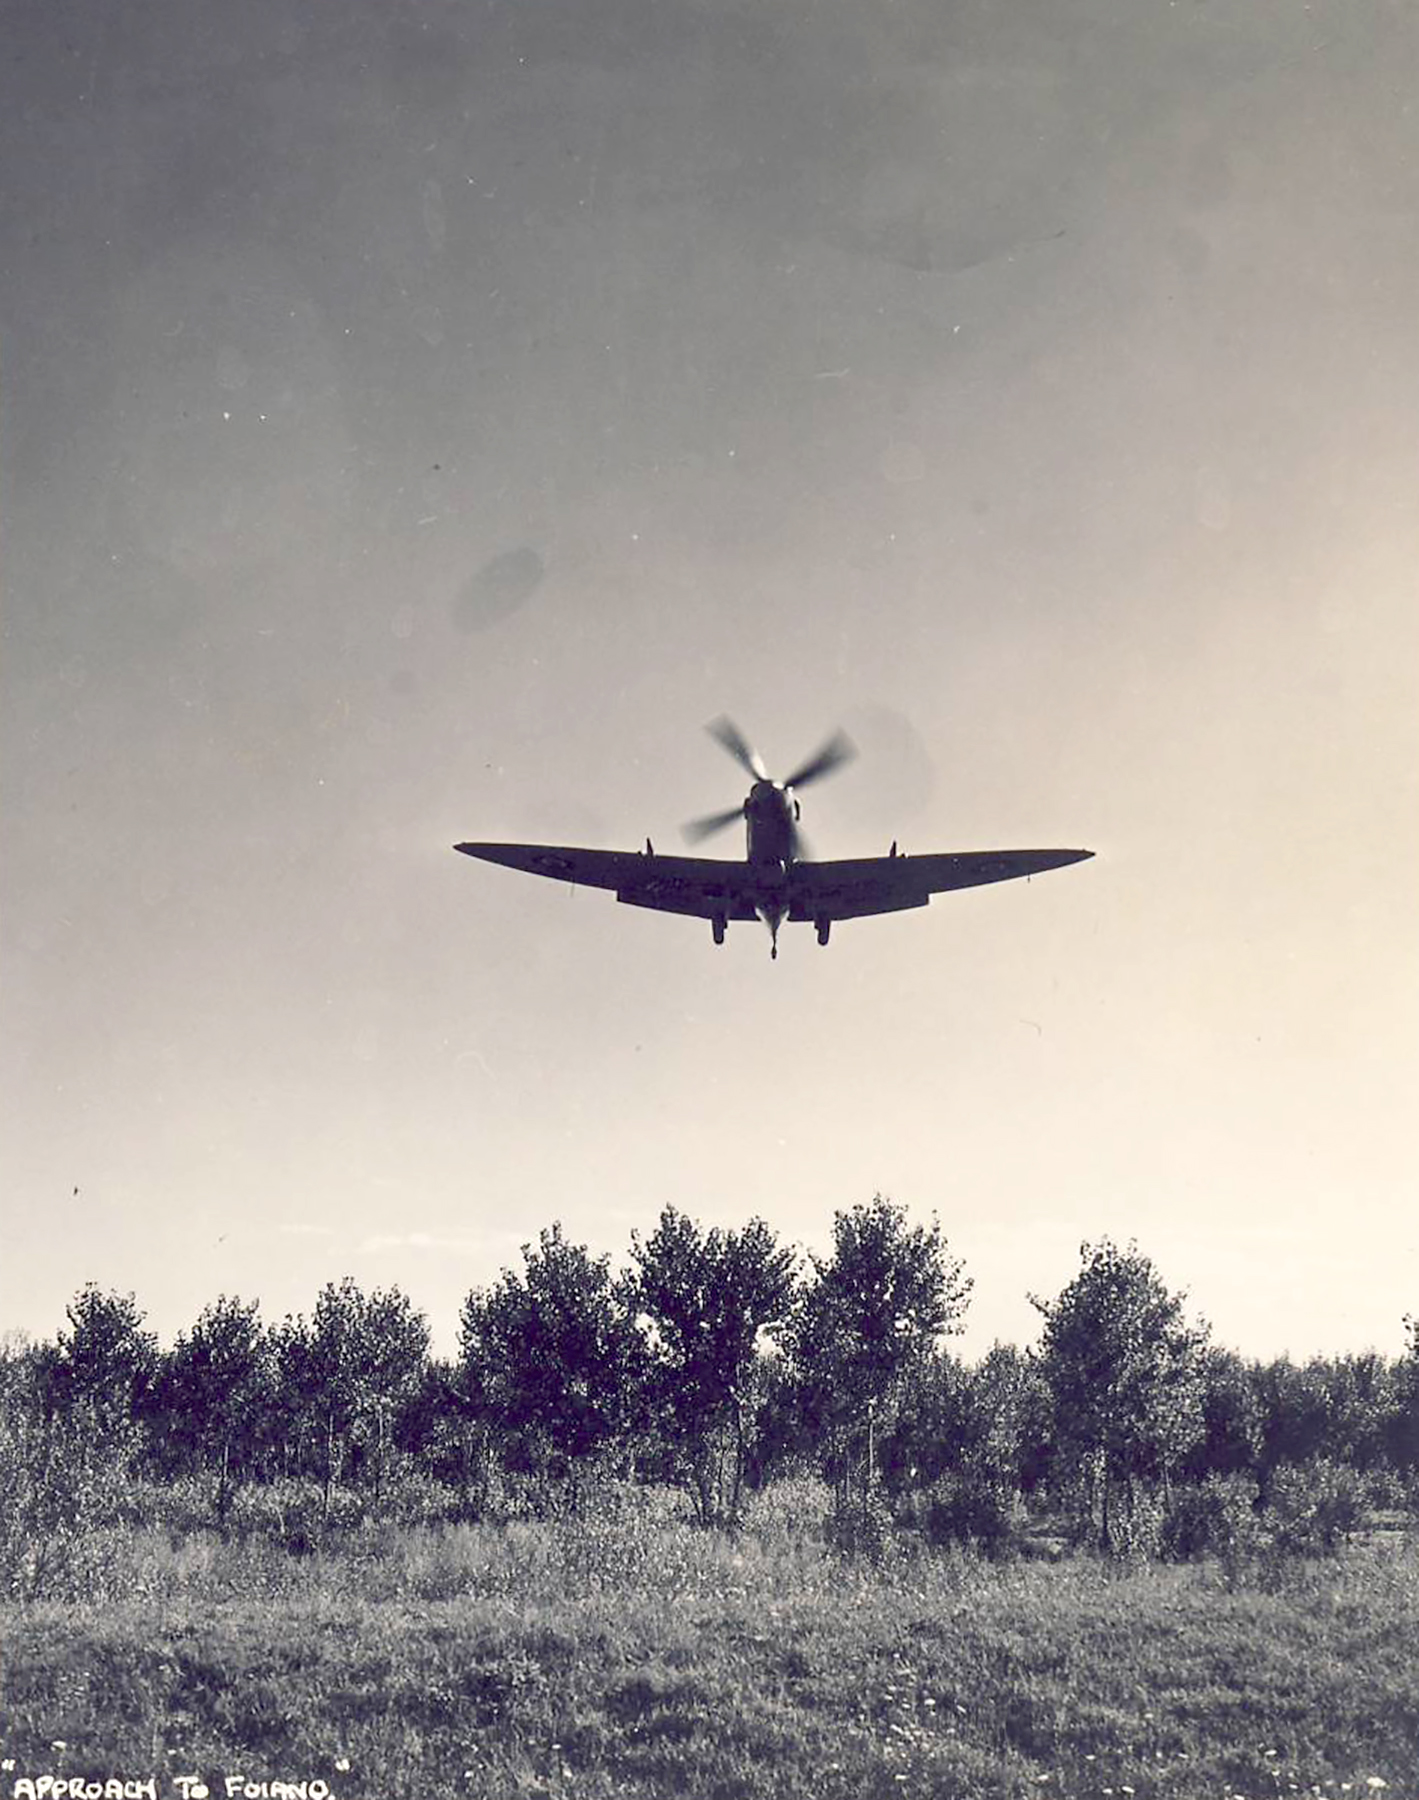 Spitfire MkVII c wing landing at a base in Italy 02